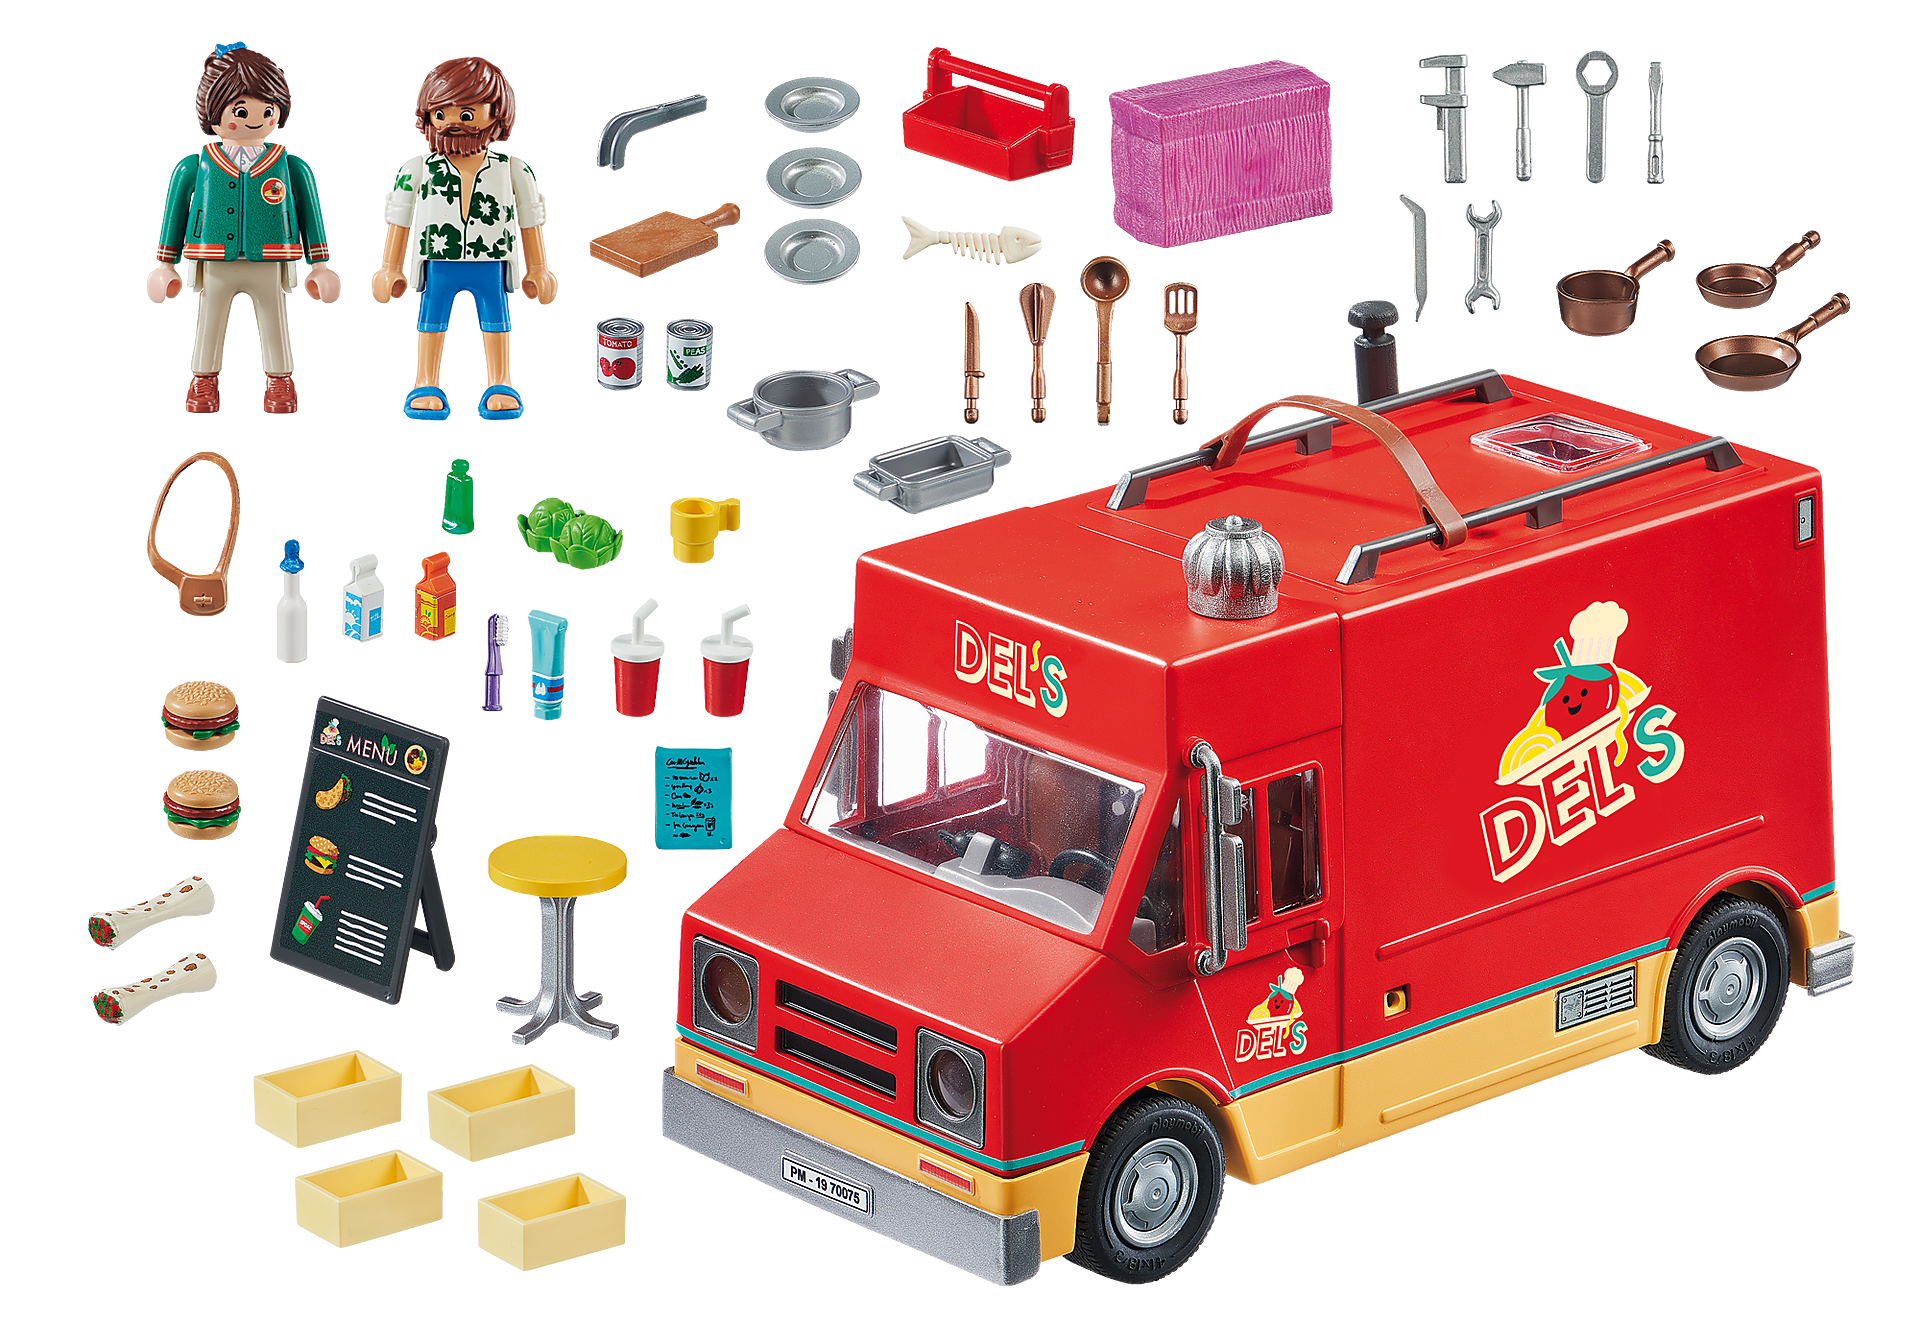 70075 PLAYMOBIL: THE MOVIE Del's Food Truck zoom image3